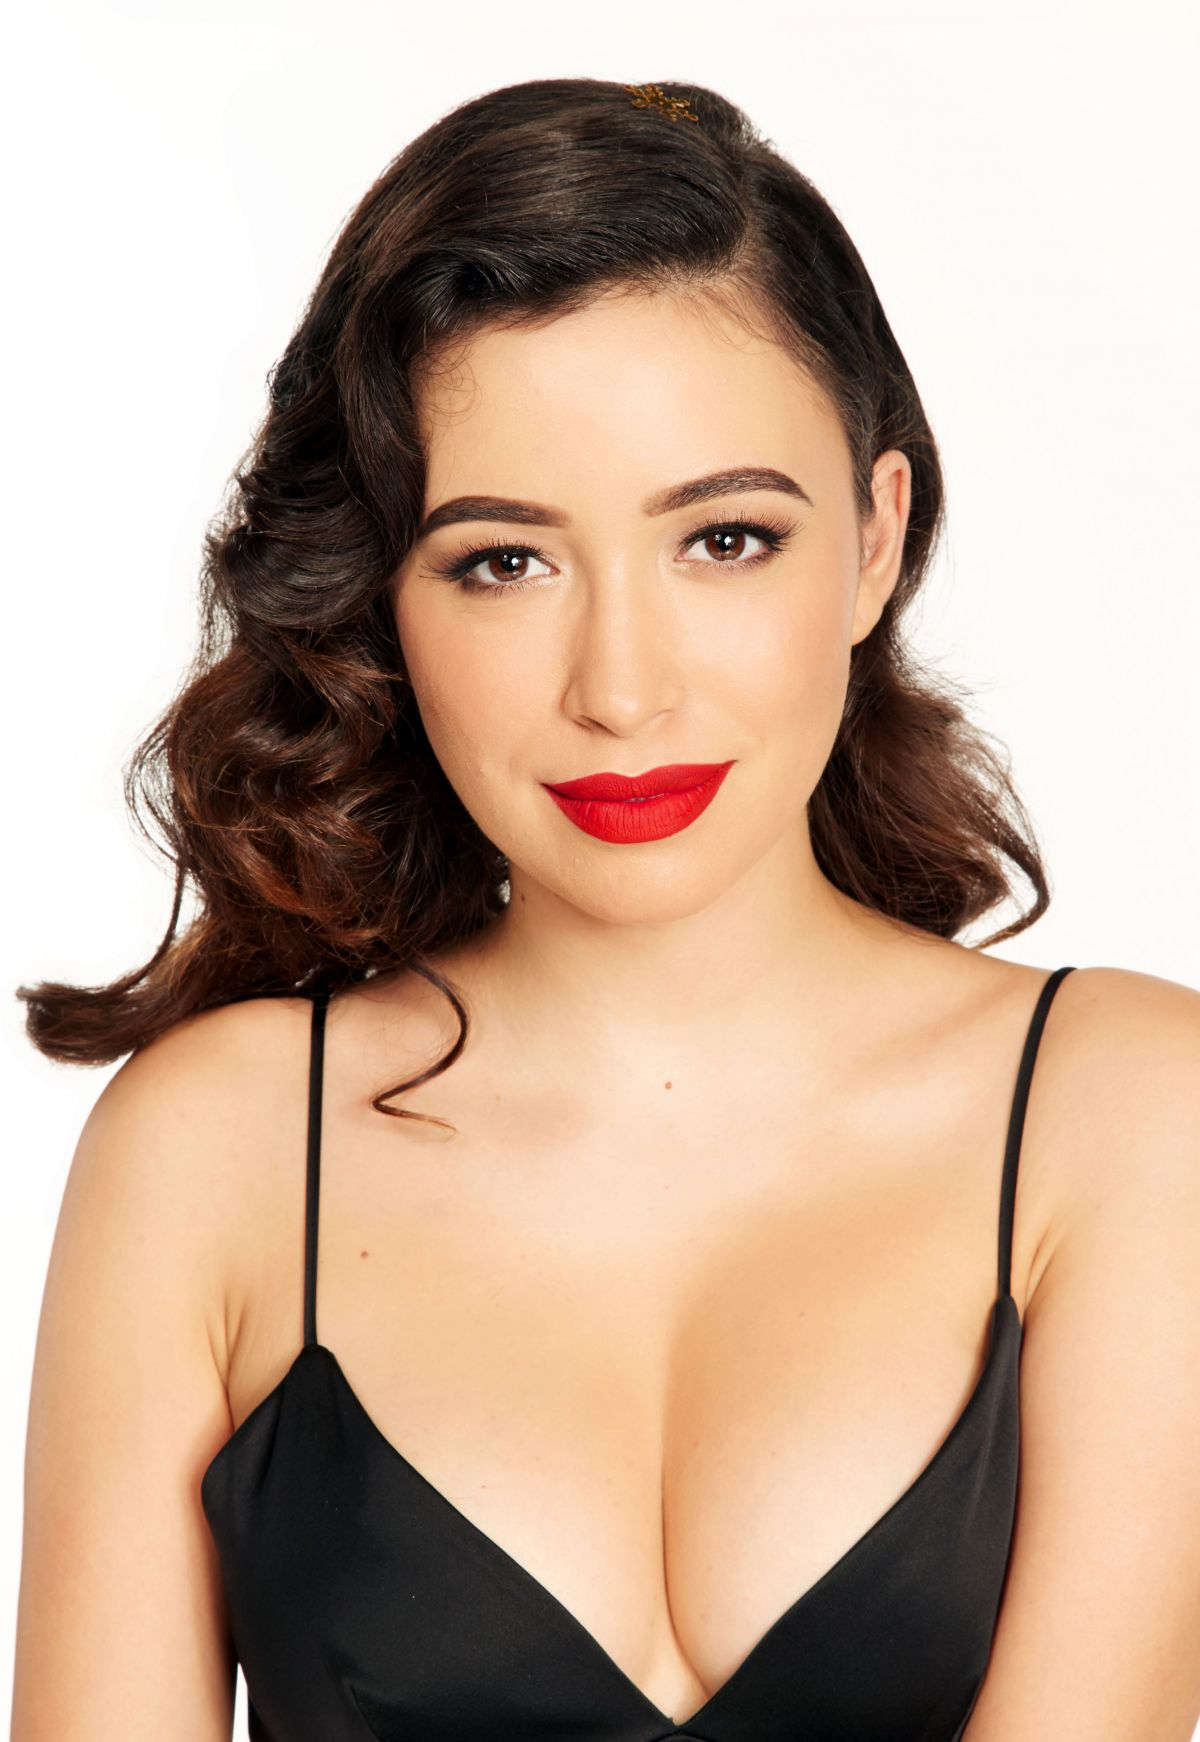 Christian Serratos Red Lips